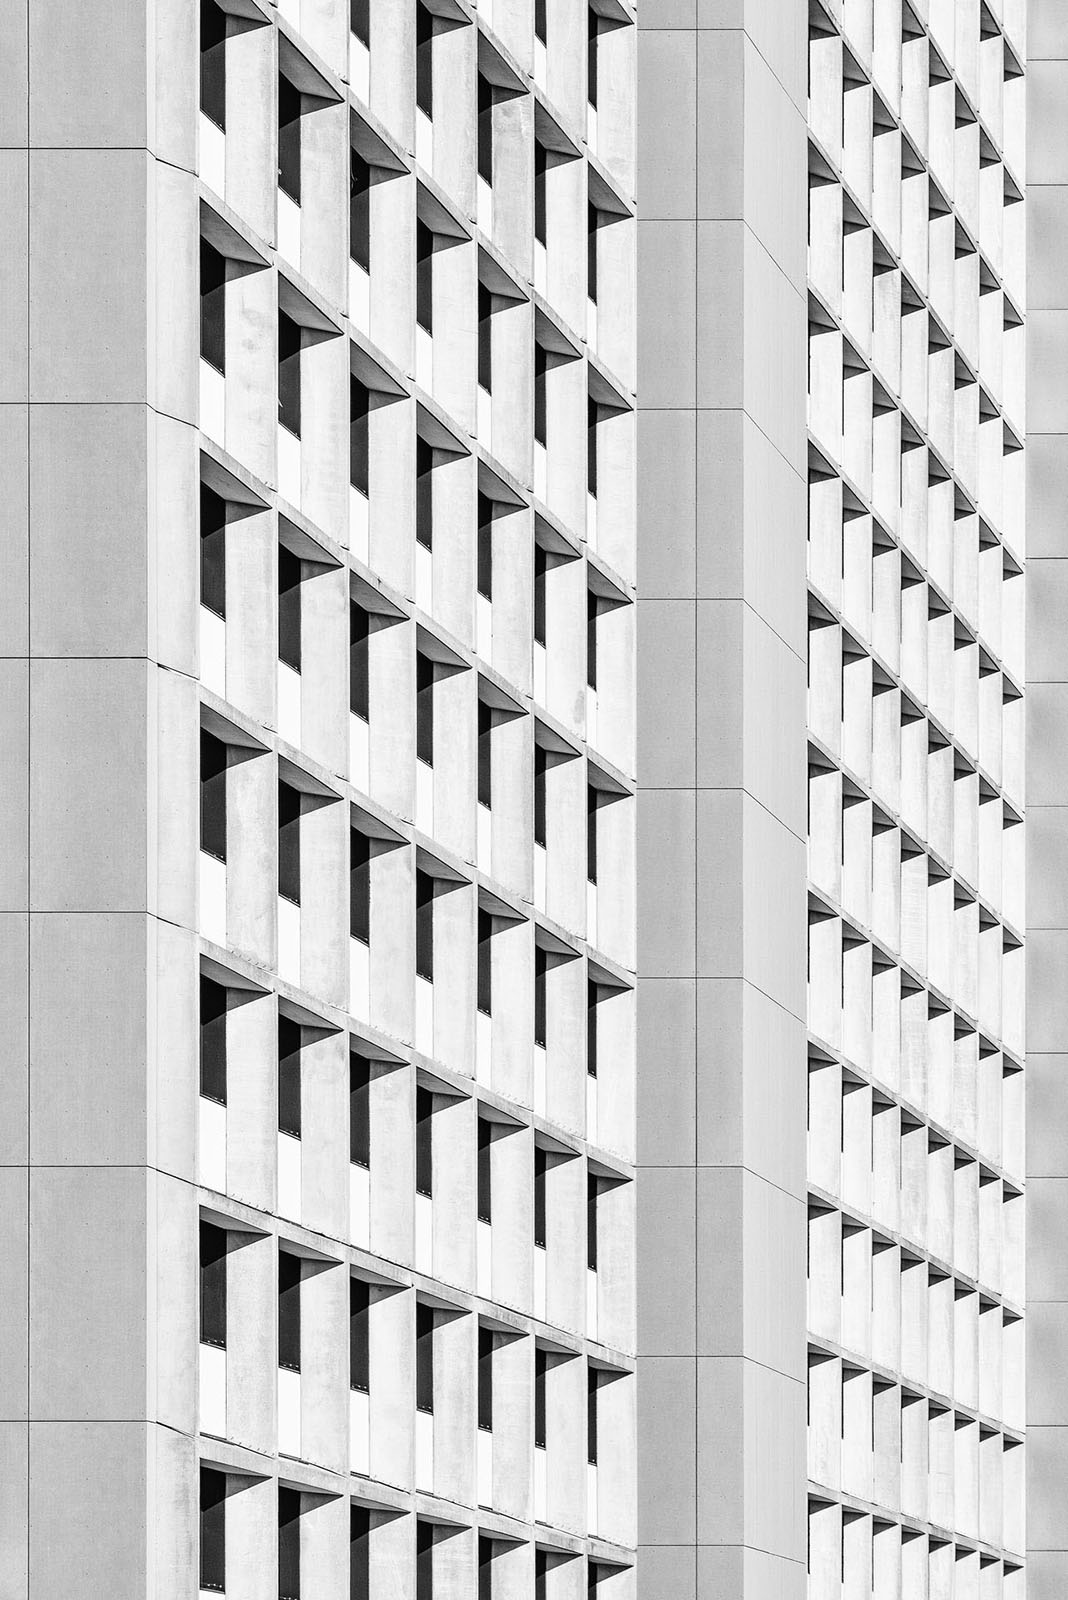 Olympic Village, Munich, Germany - Architect: Heinle, Wischer und Partner - Game of Shapes - Black & White Fine Art Architecture Series